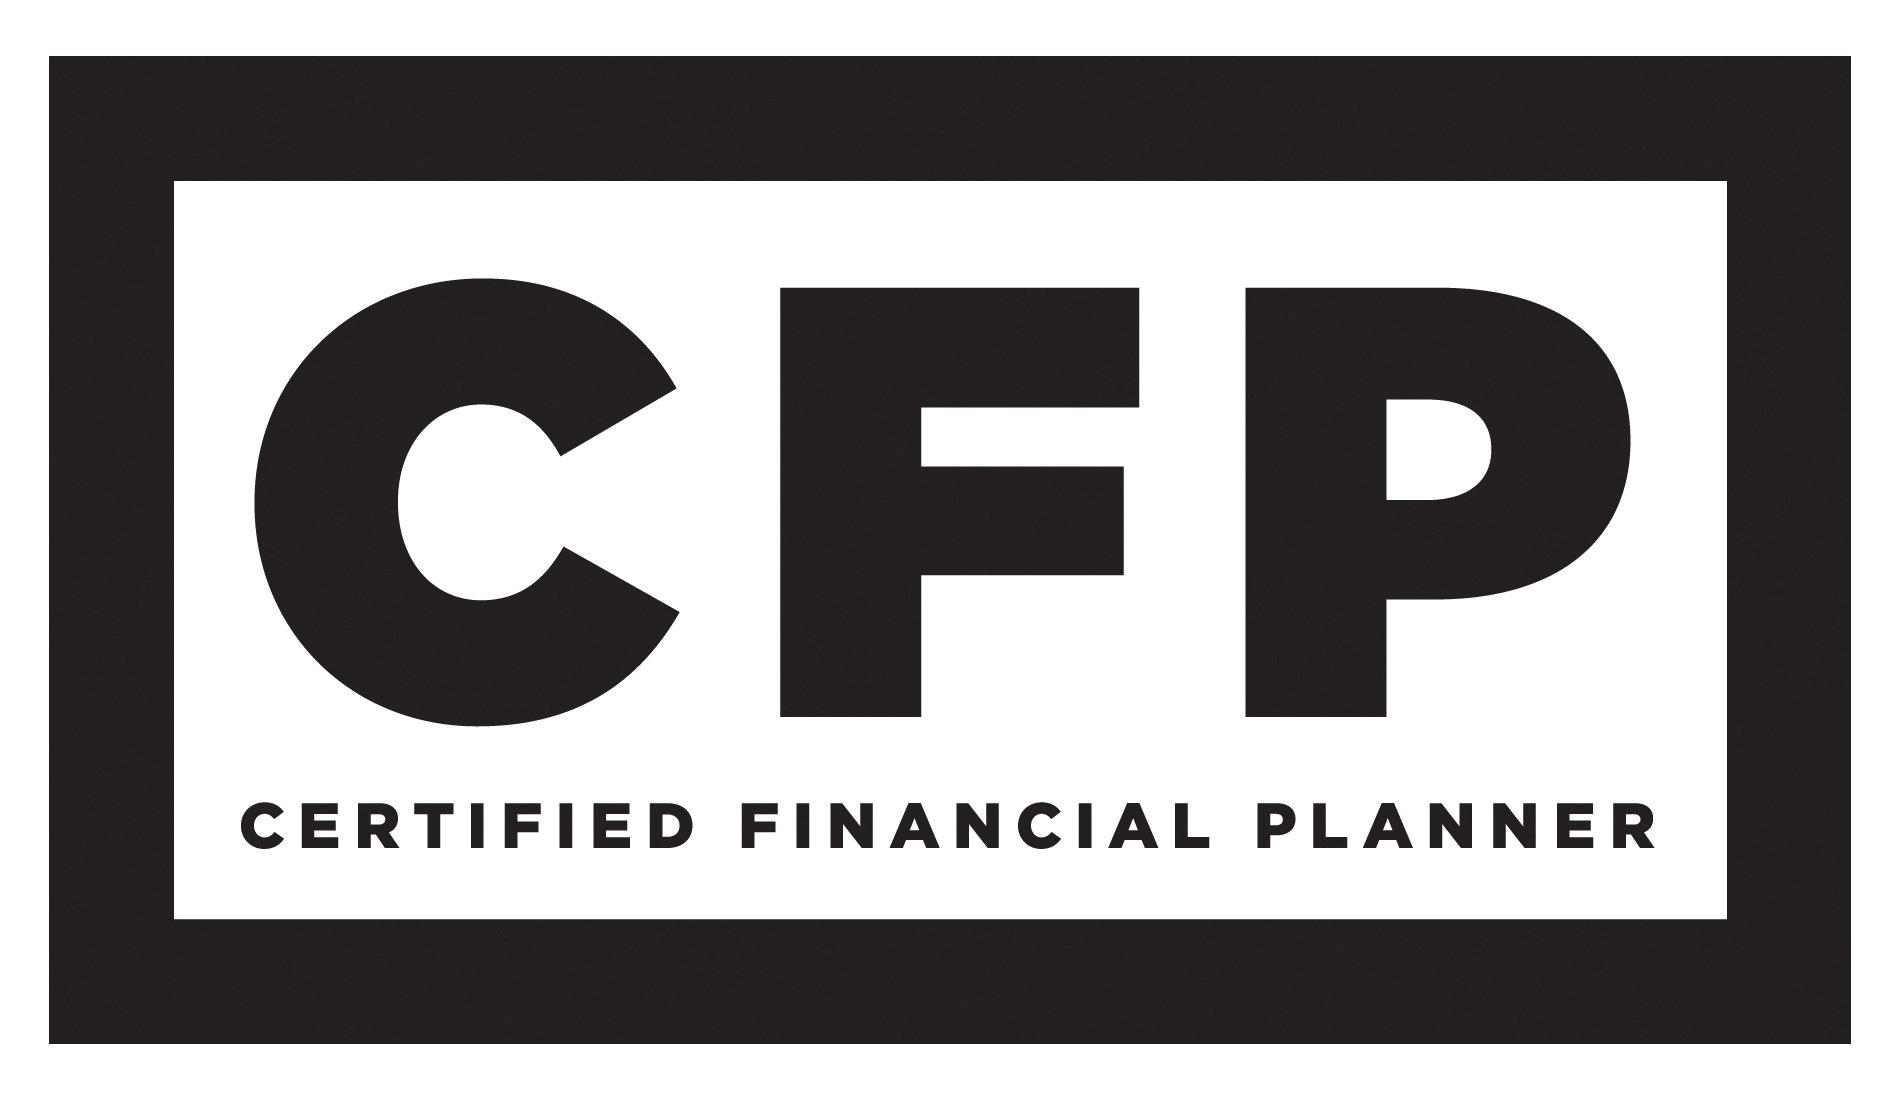 Certified Financial Planners Net Worth Advisory Group Salt Lake City, UT